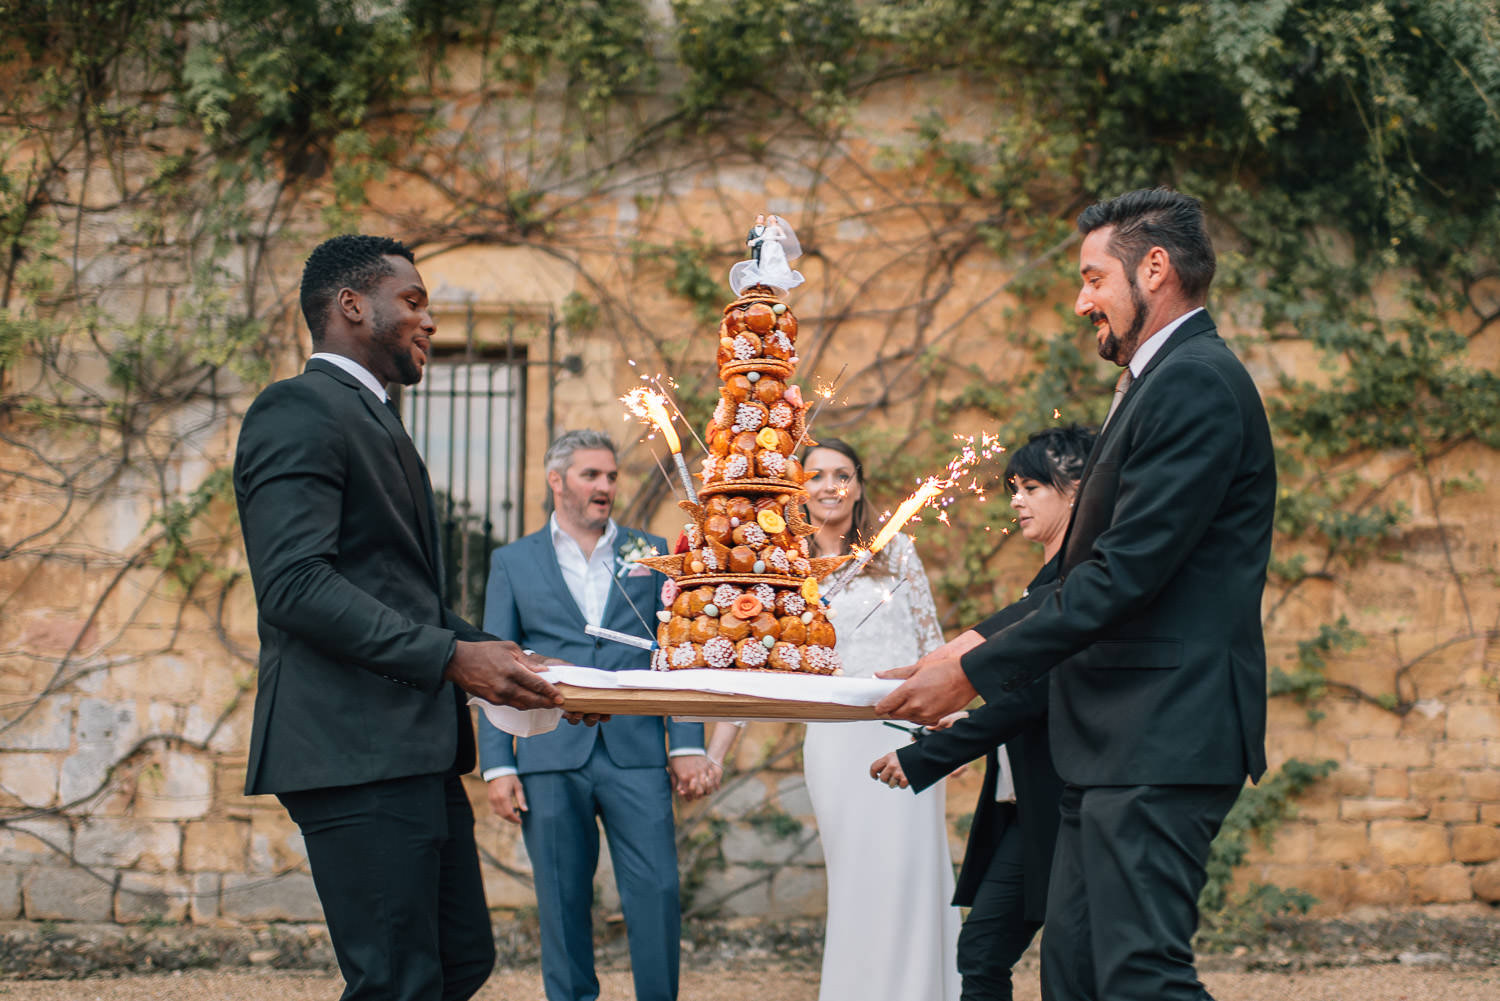 croq en bouche wedding cake in chateau de la bourlie wedding by french destination wedding photographer the shannons photography